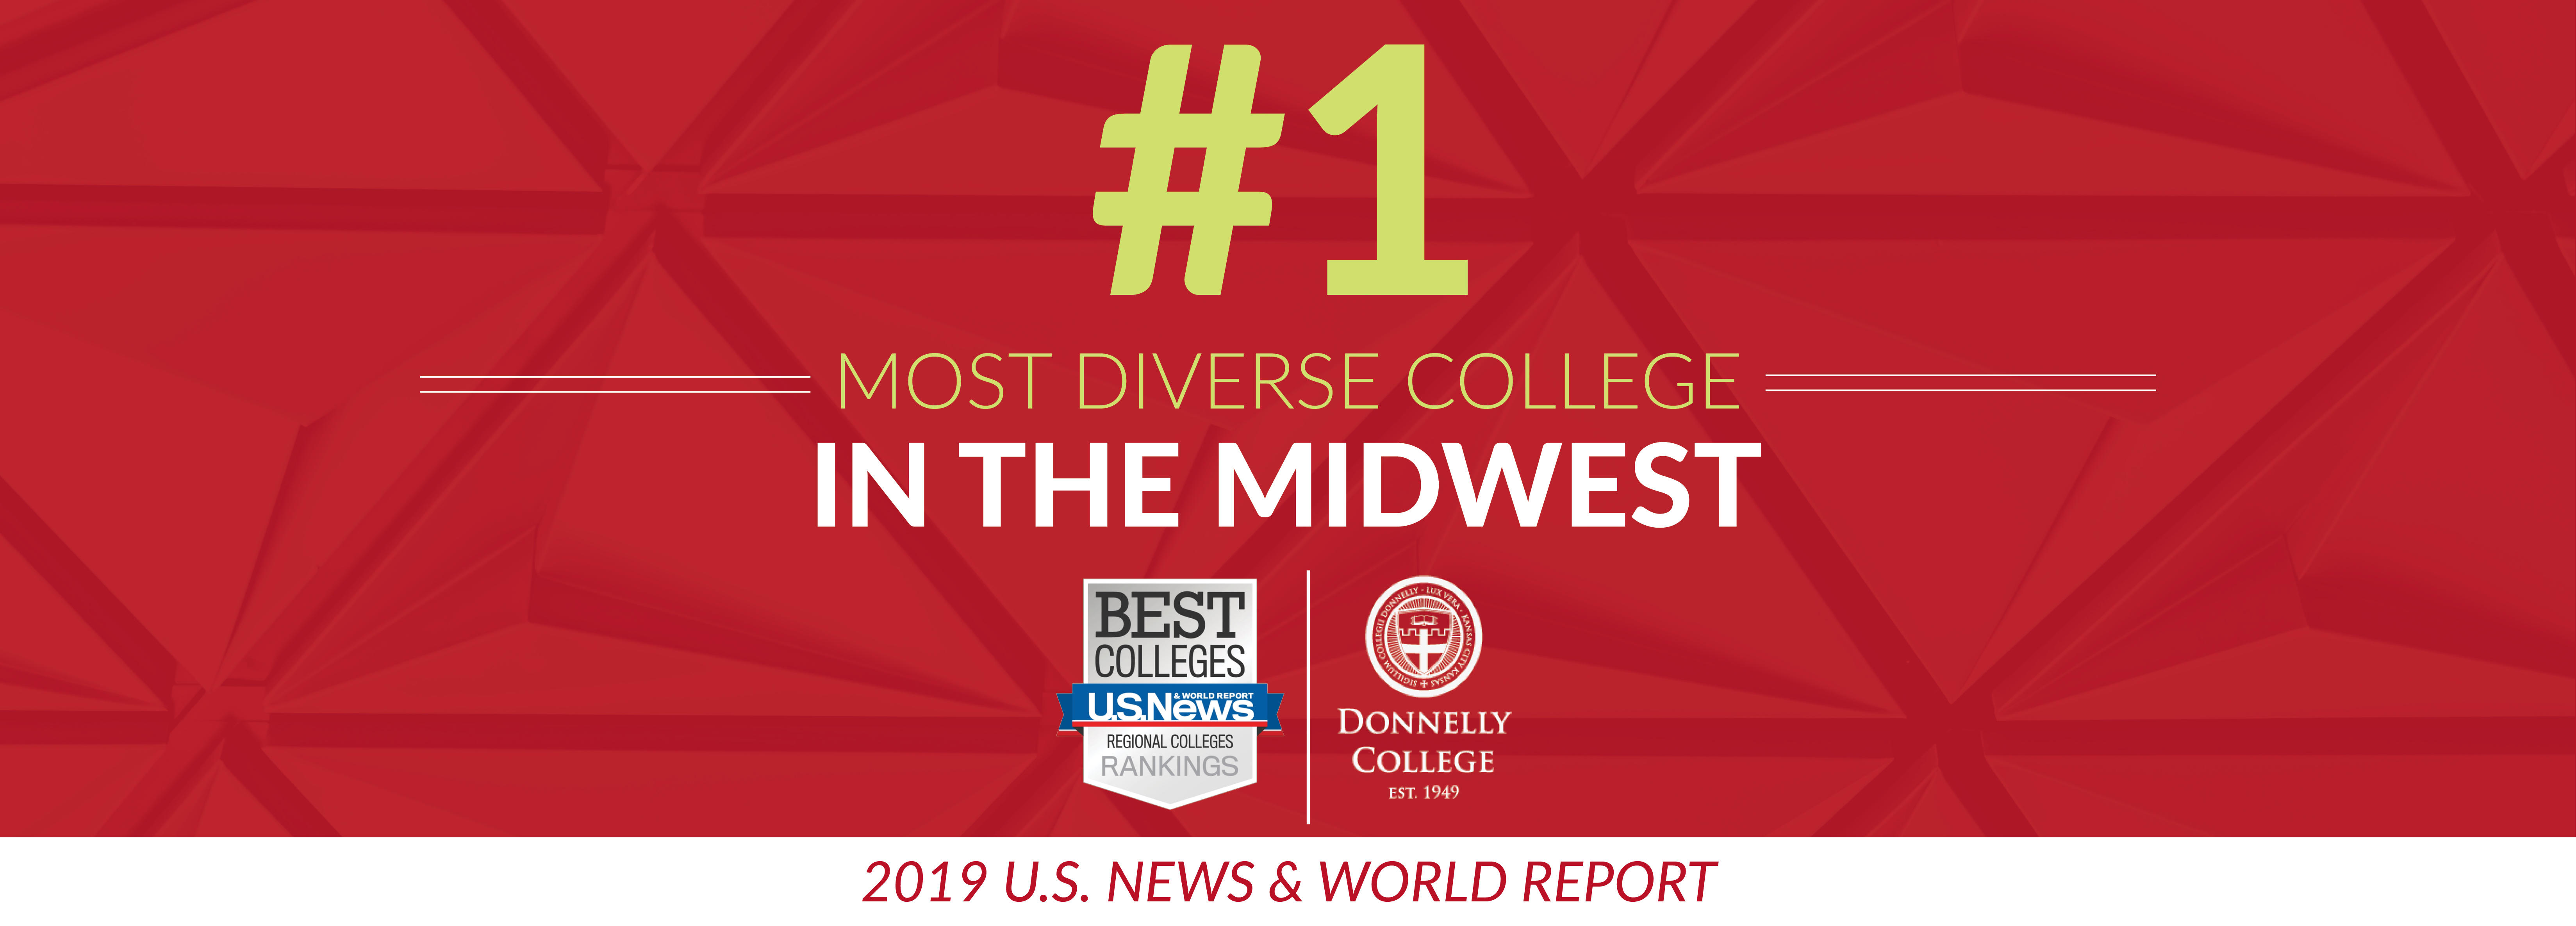 #1 most diverse college in the Midwest